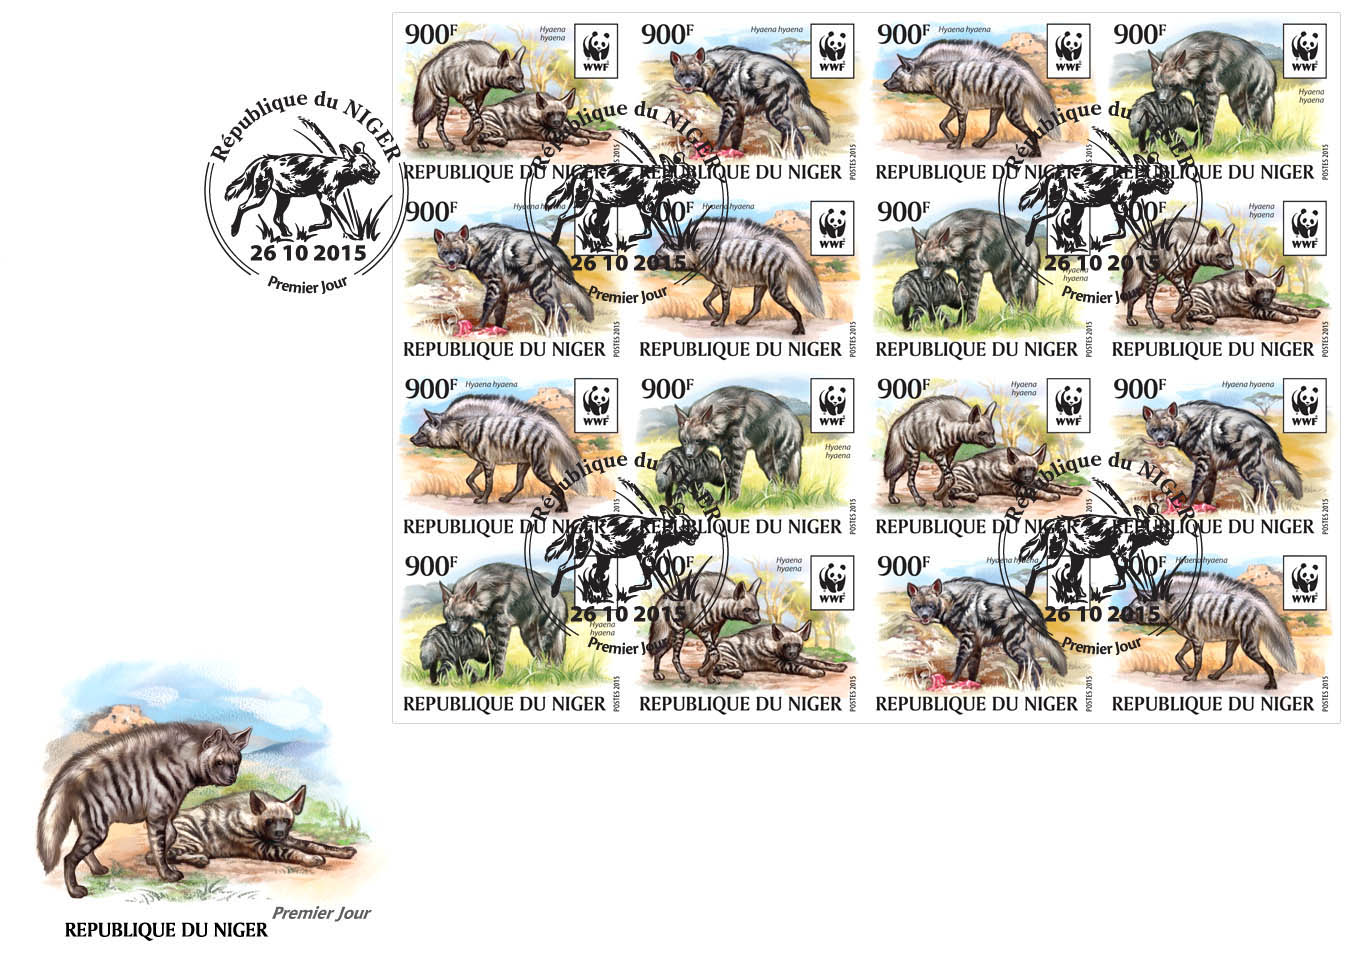 WWF – Hyena (FDC imperf.) - Issue of Niger postage stamps